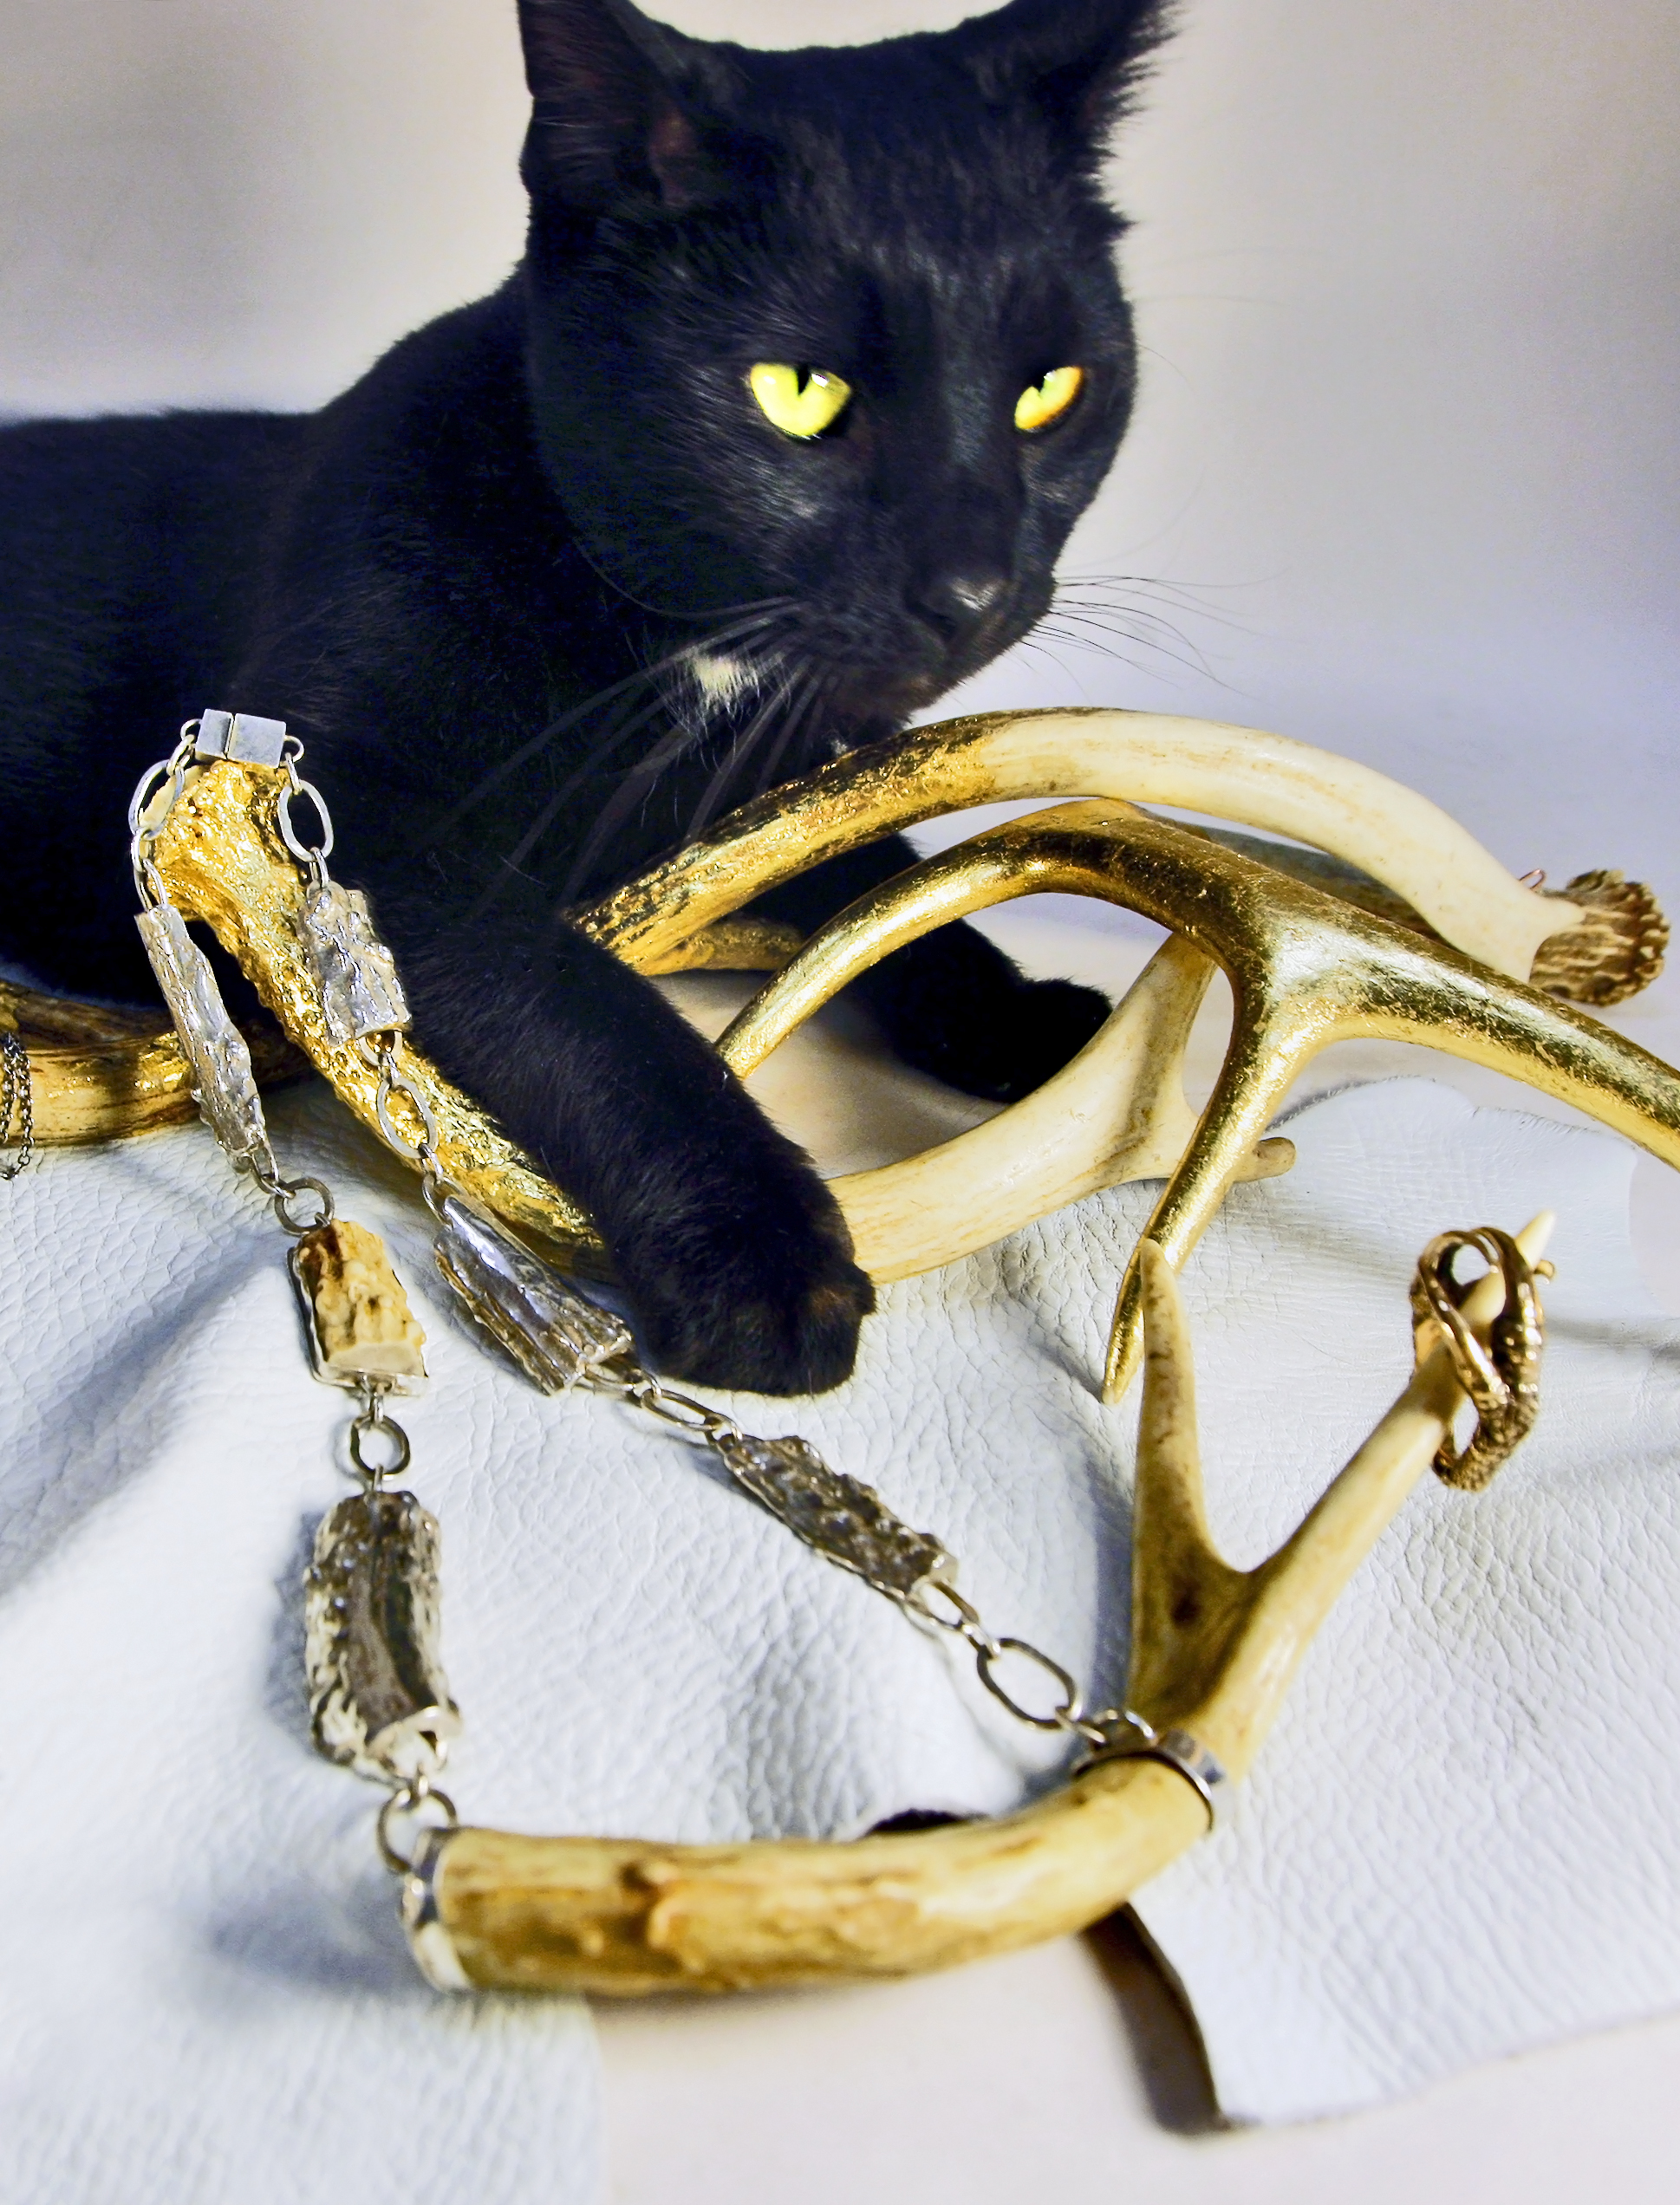 Fifi, my first cat model. Isn't she fierce?!!